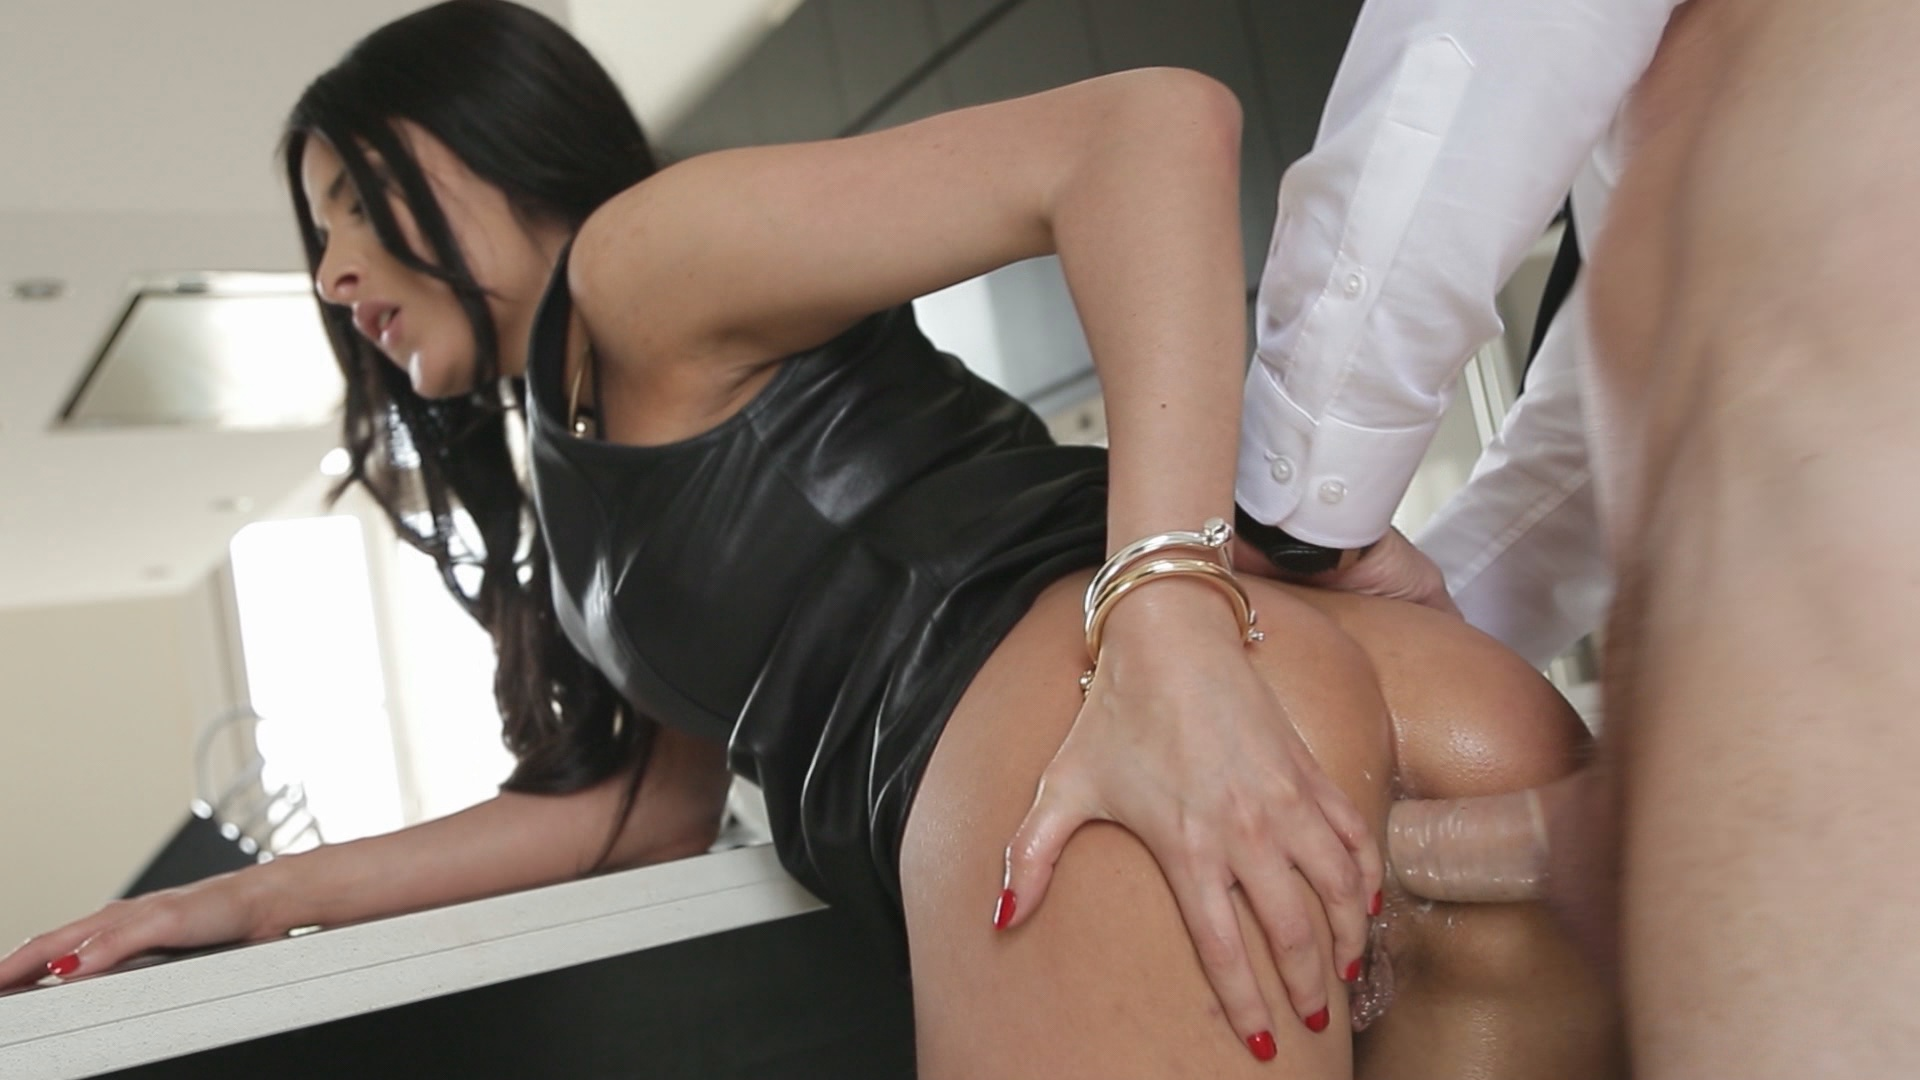 Luxury : Anissa Kate Offered xvideos